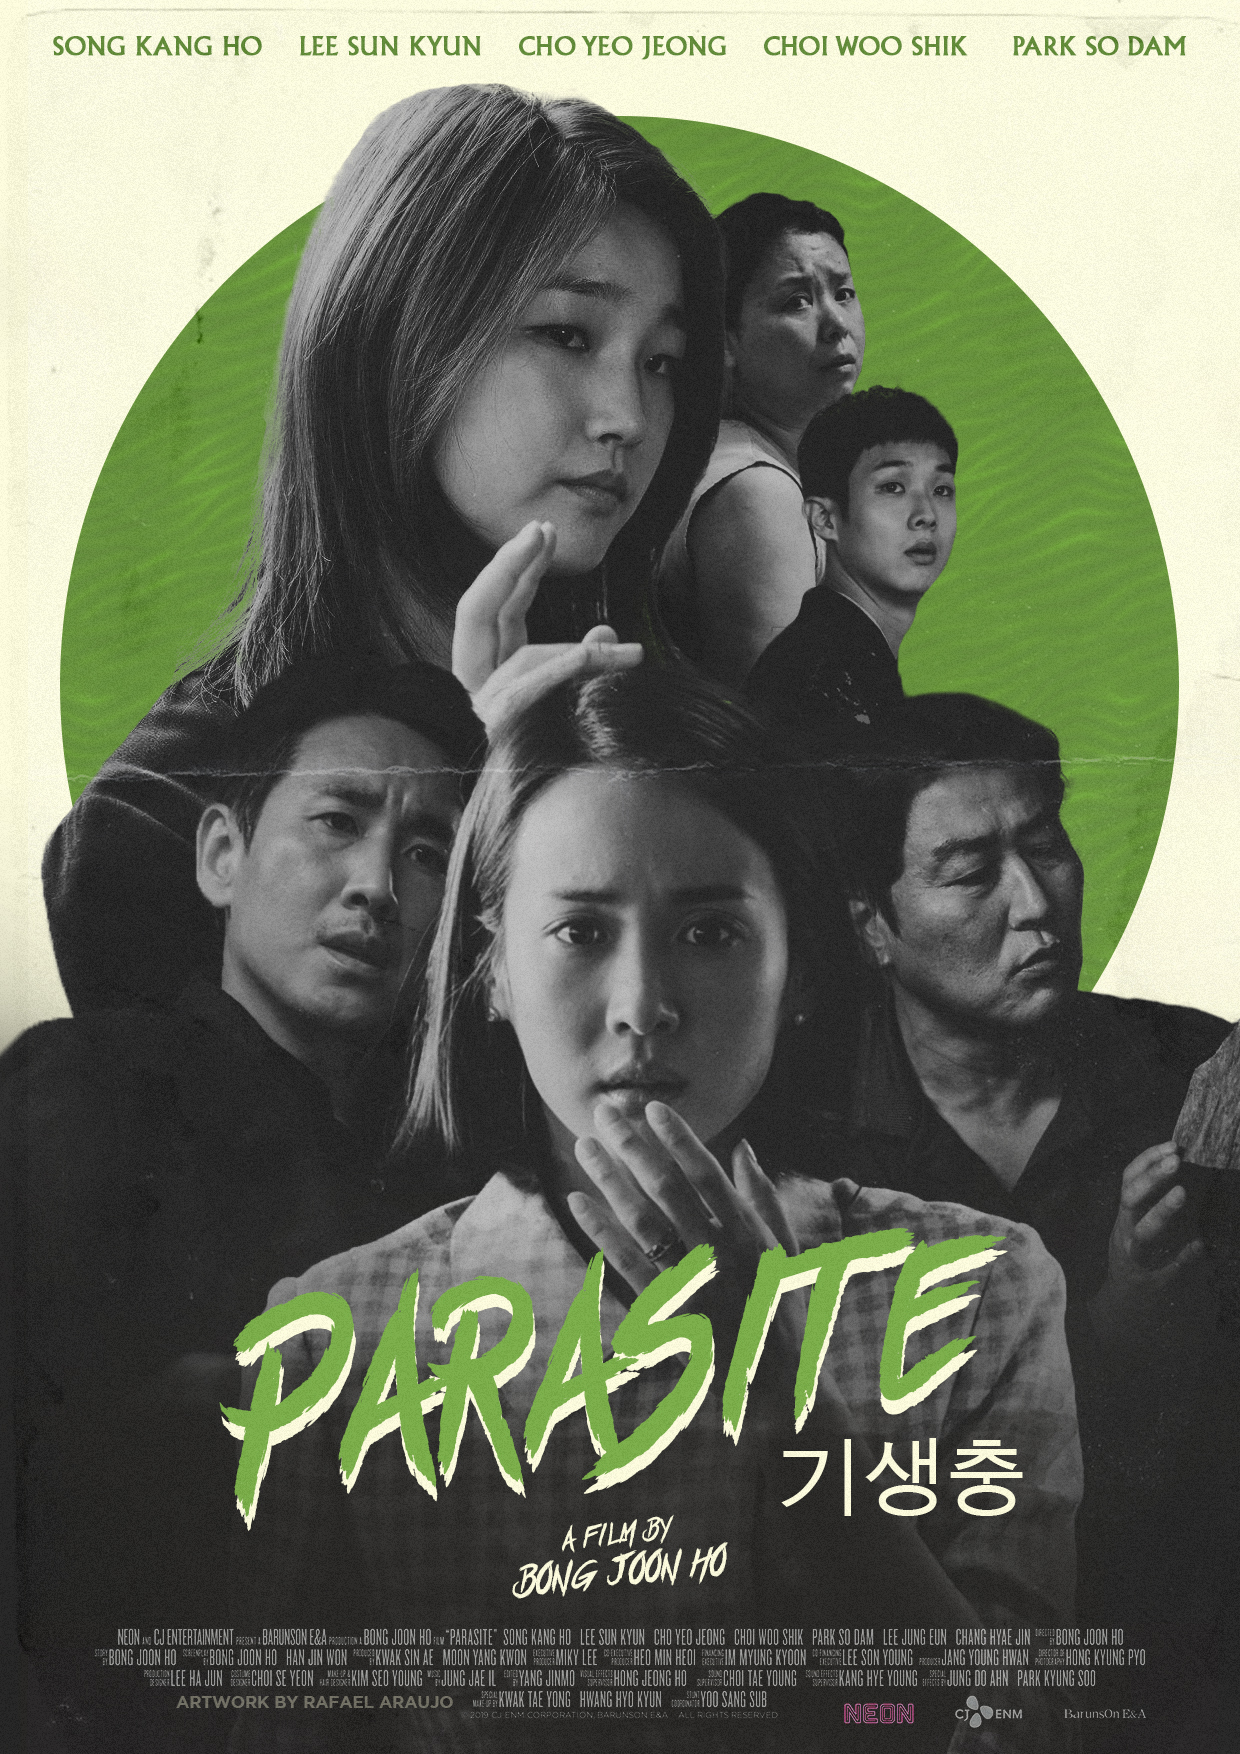 Parasite 2019 Vhs Cover By Amazing Zuckonit On Deviantart